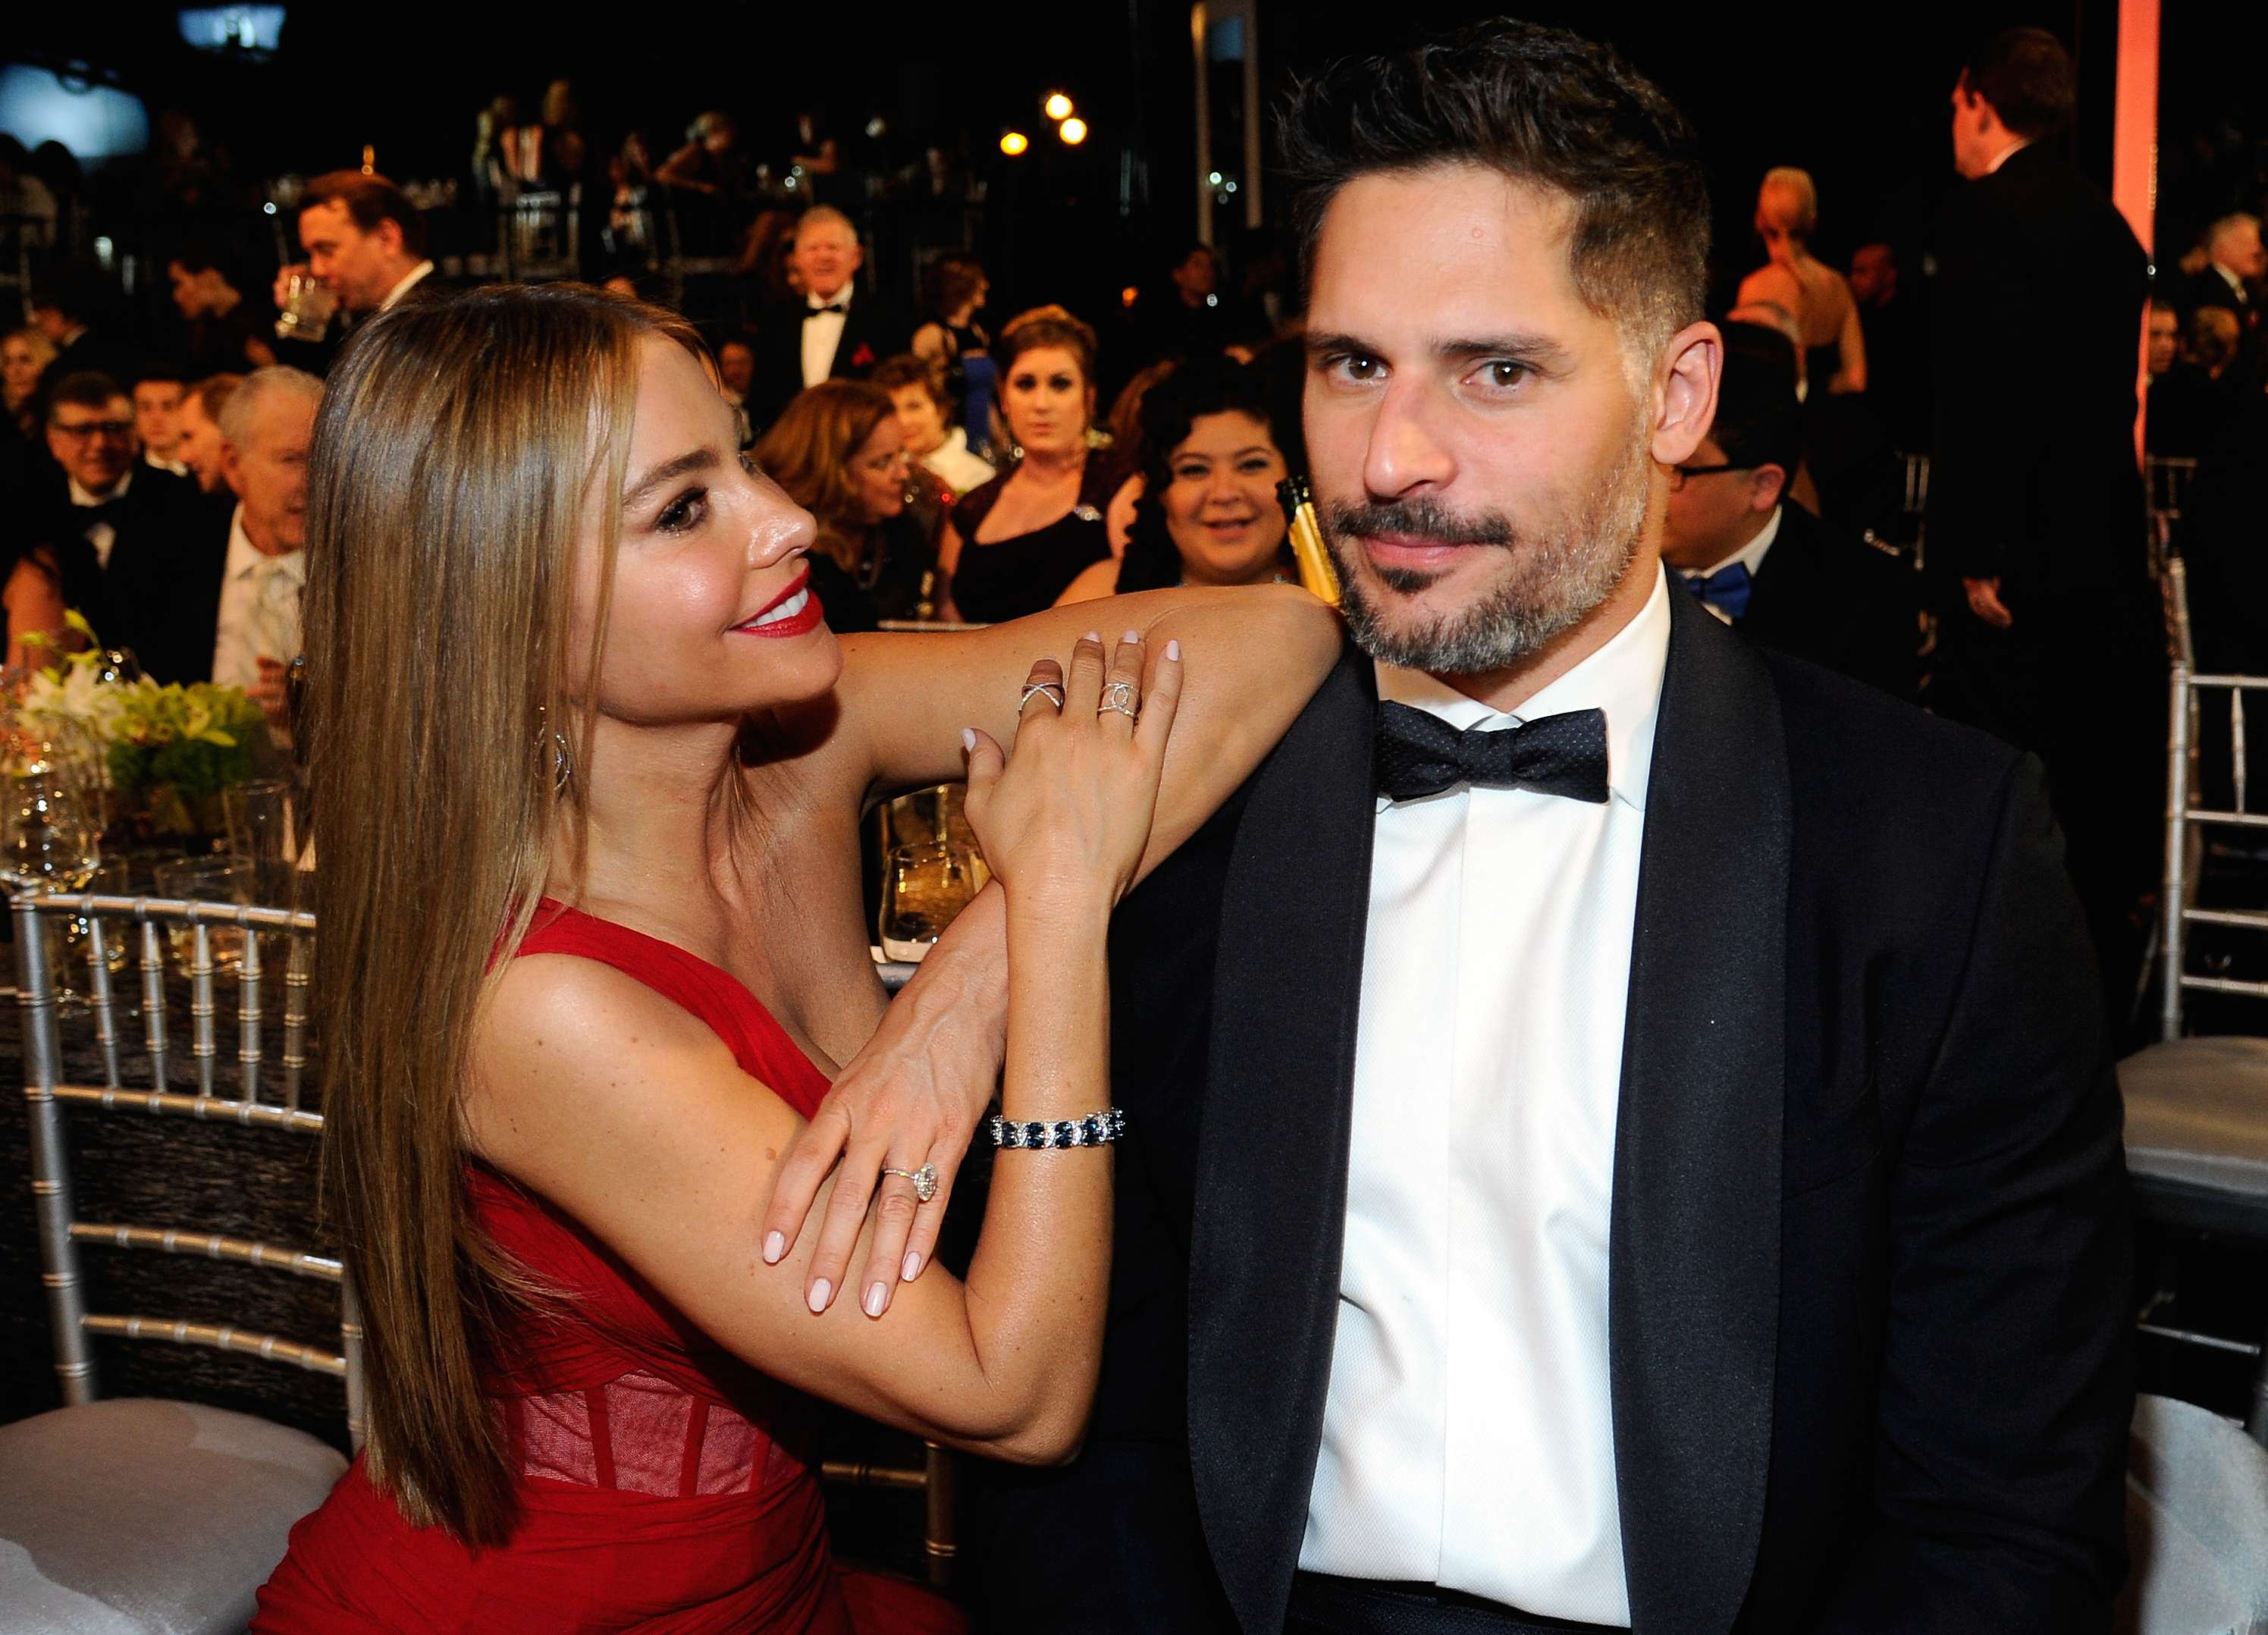 ¿Sofía Vergara y Joe Manganiello ya se casaron? Foto: Getty Images